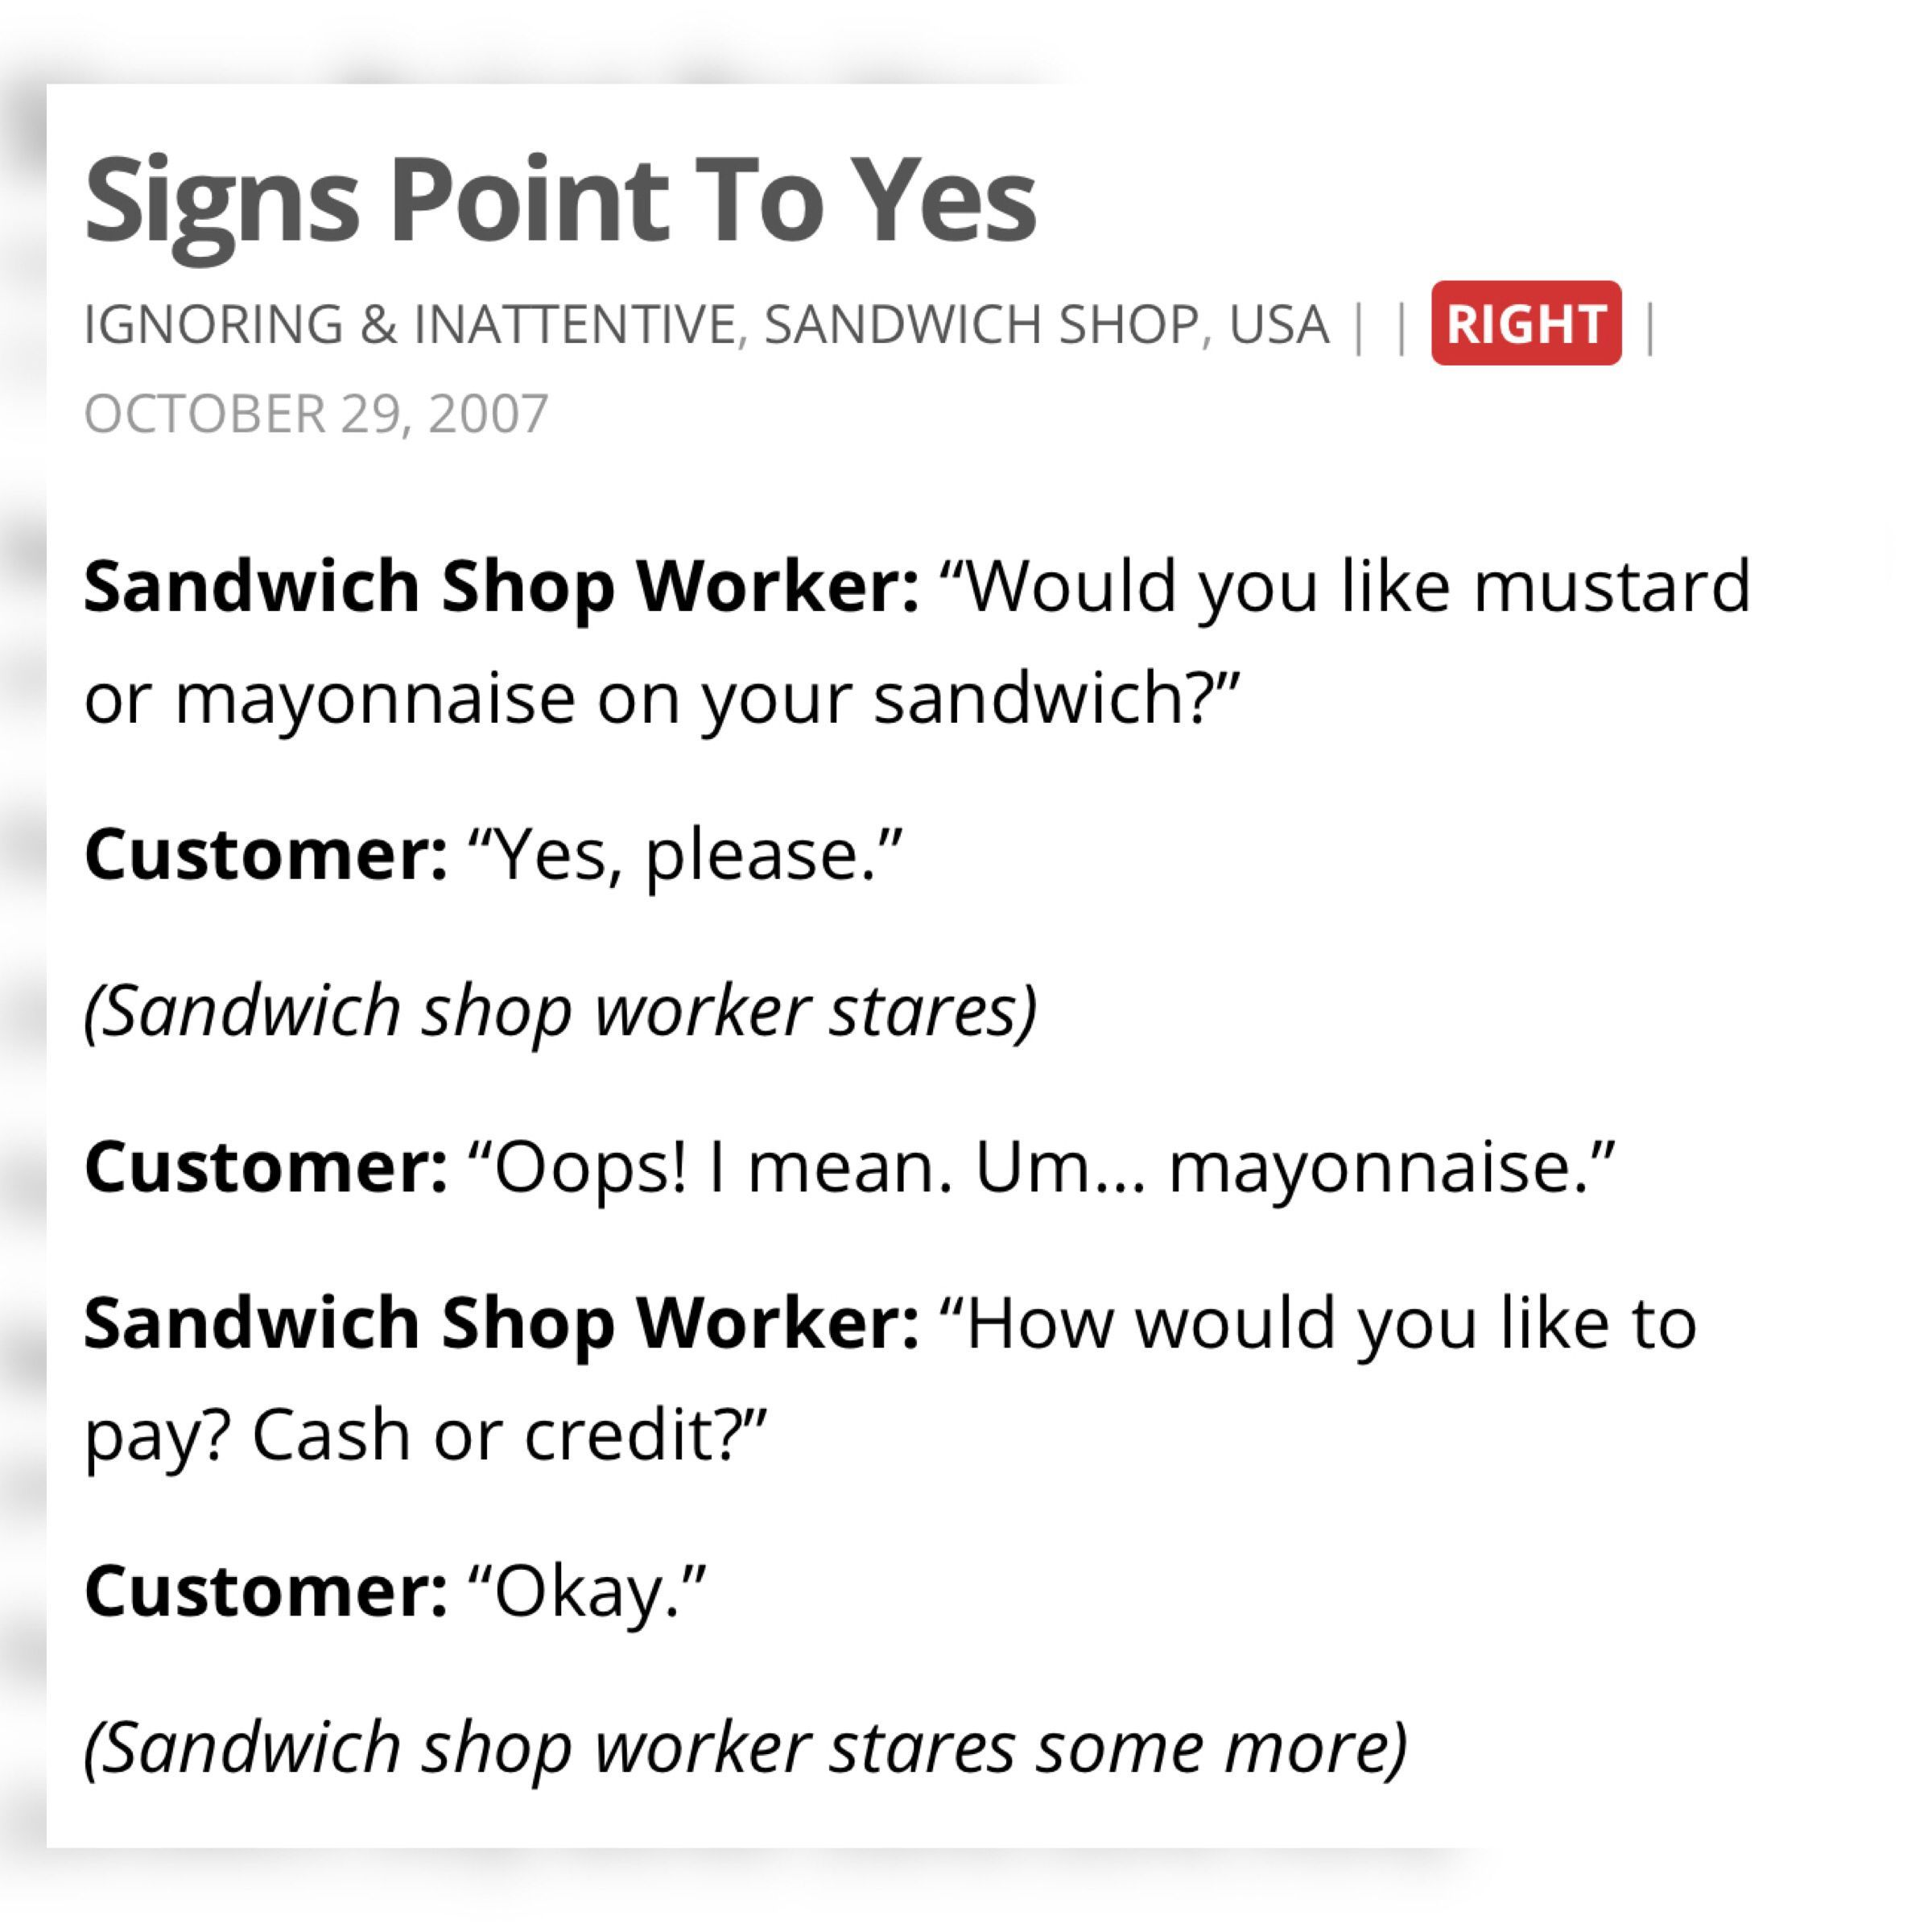 This Happens Quite Often Notalwaysright Sandwich Shop Mustard Mayonnaise Customer Store Cash Credit Funny True Stories Funny Stories Fandom Funny